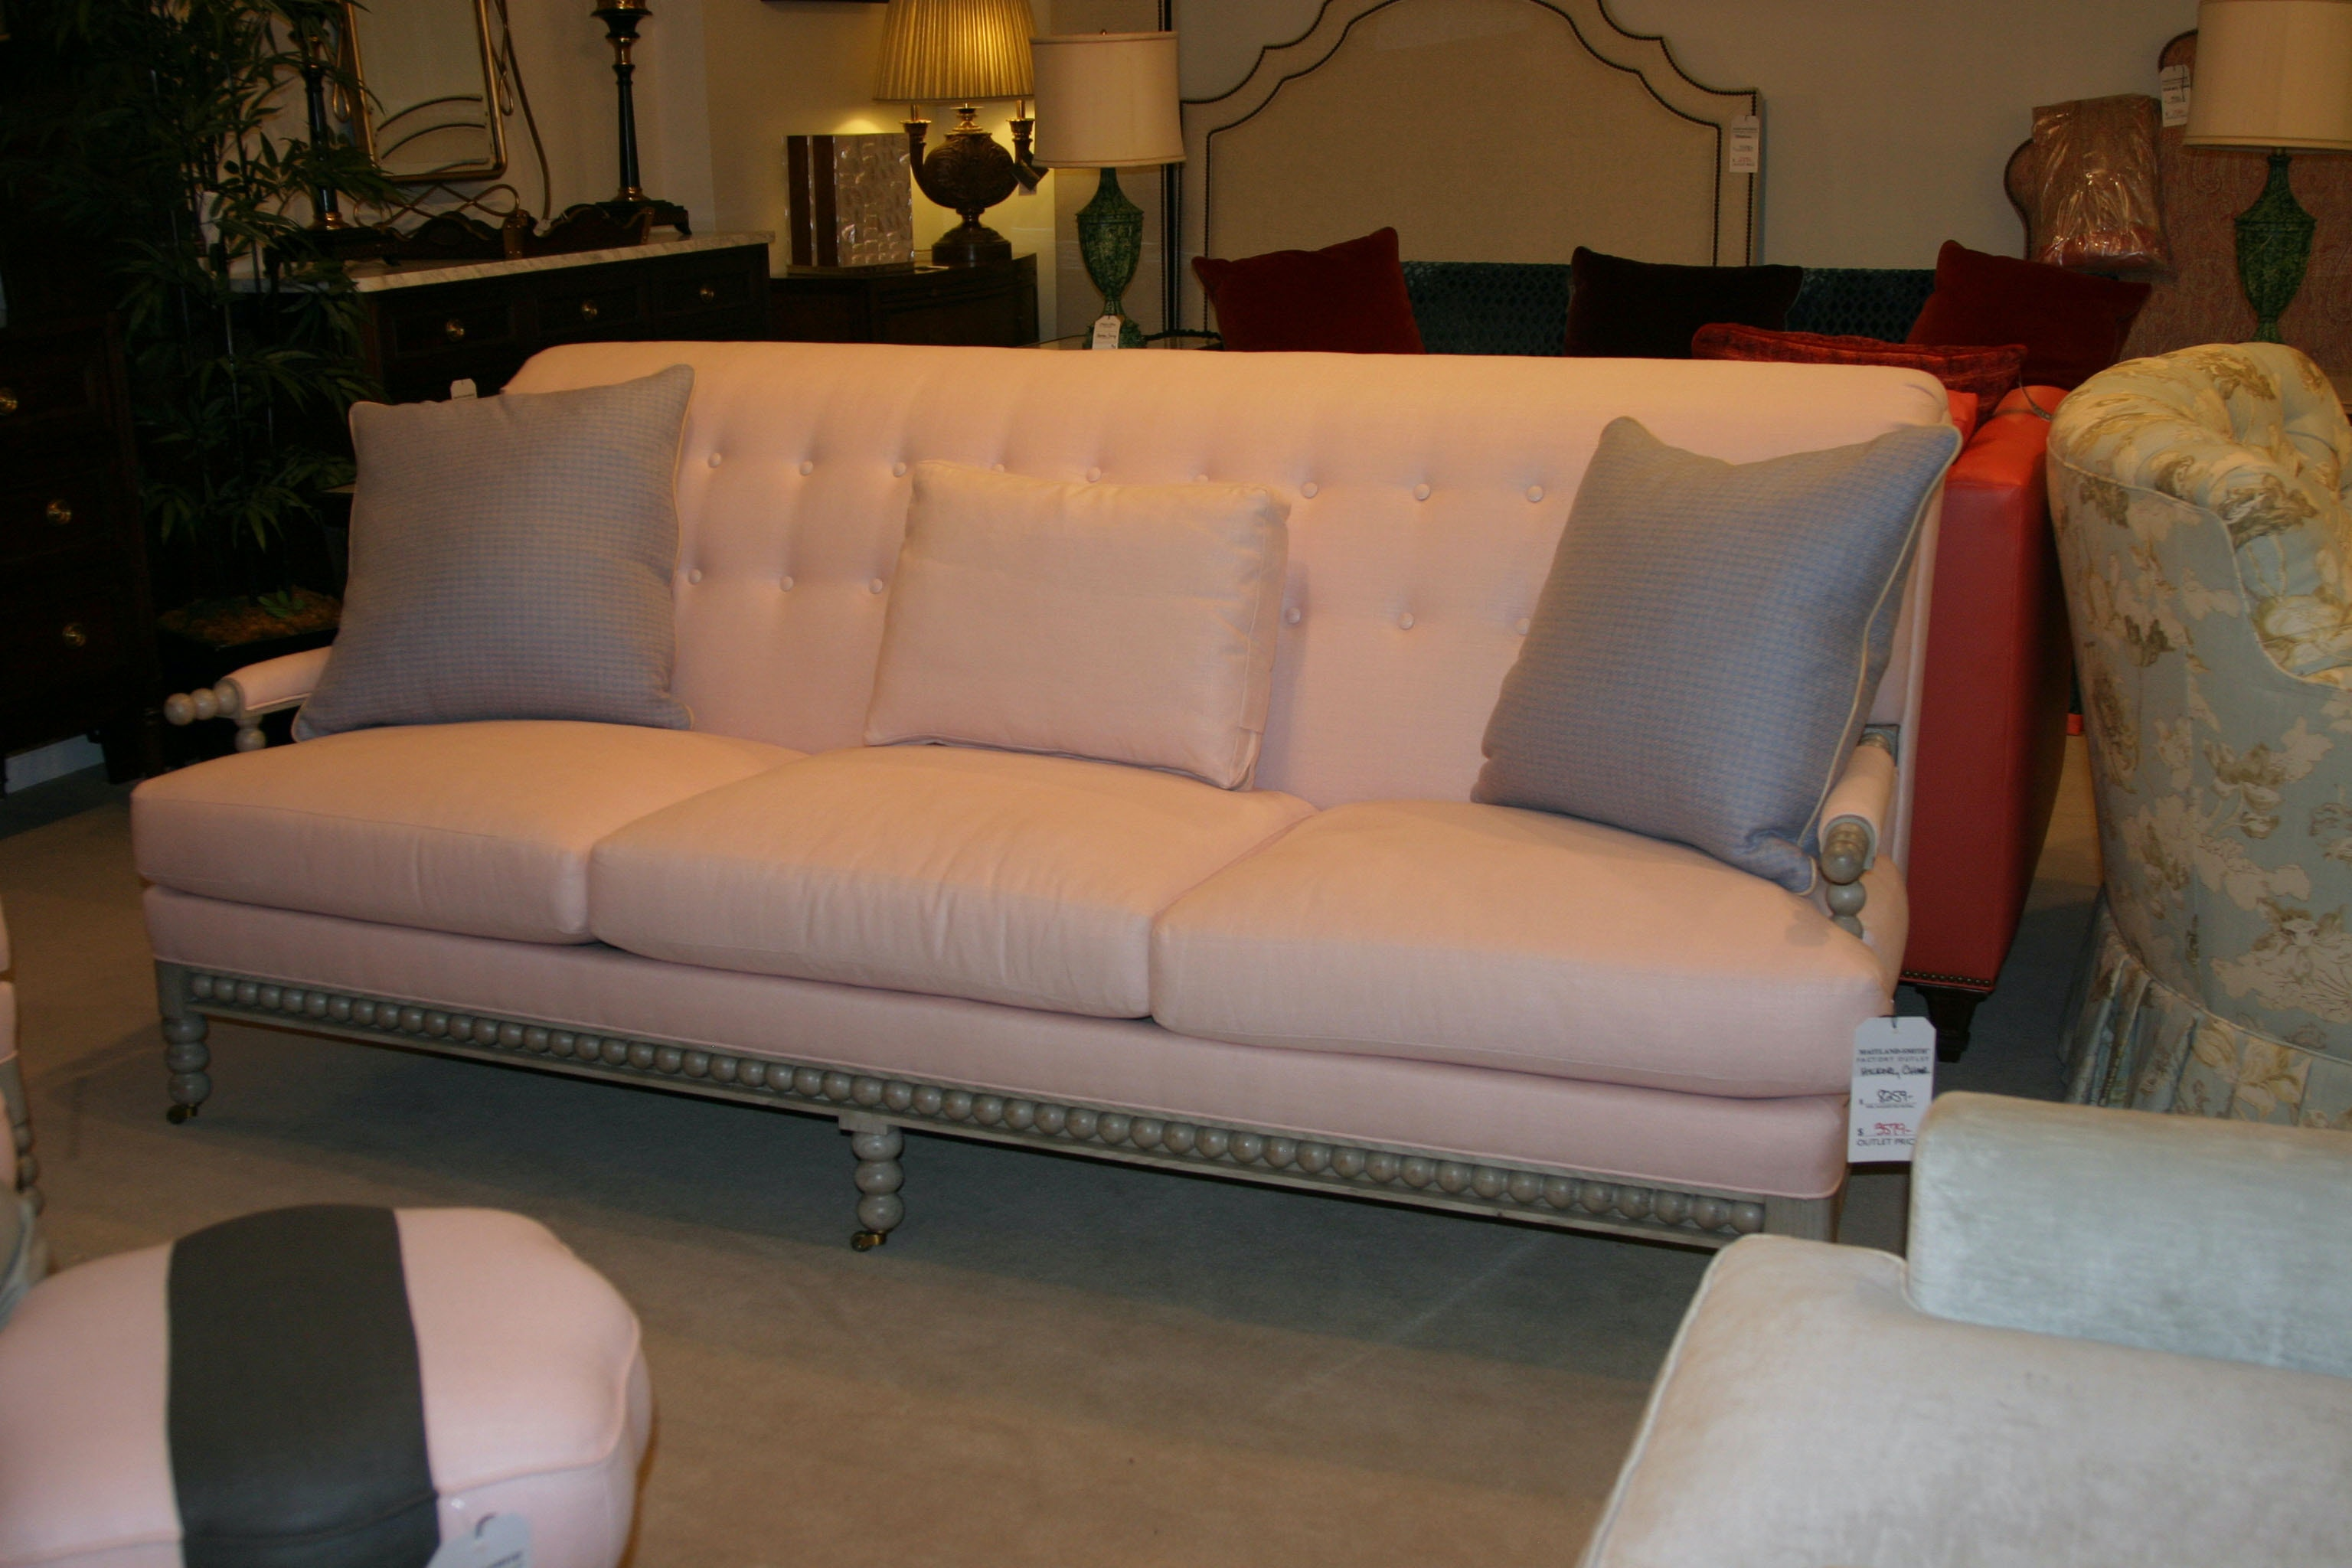 Hickory Chair Factory Outlet Adler Sofa By Hickory Chair 3304 86